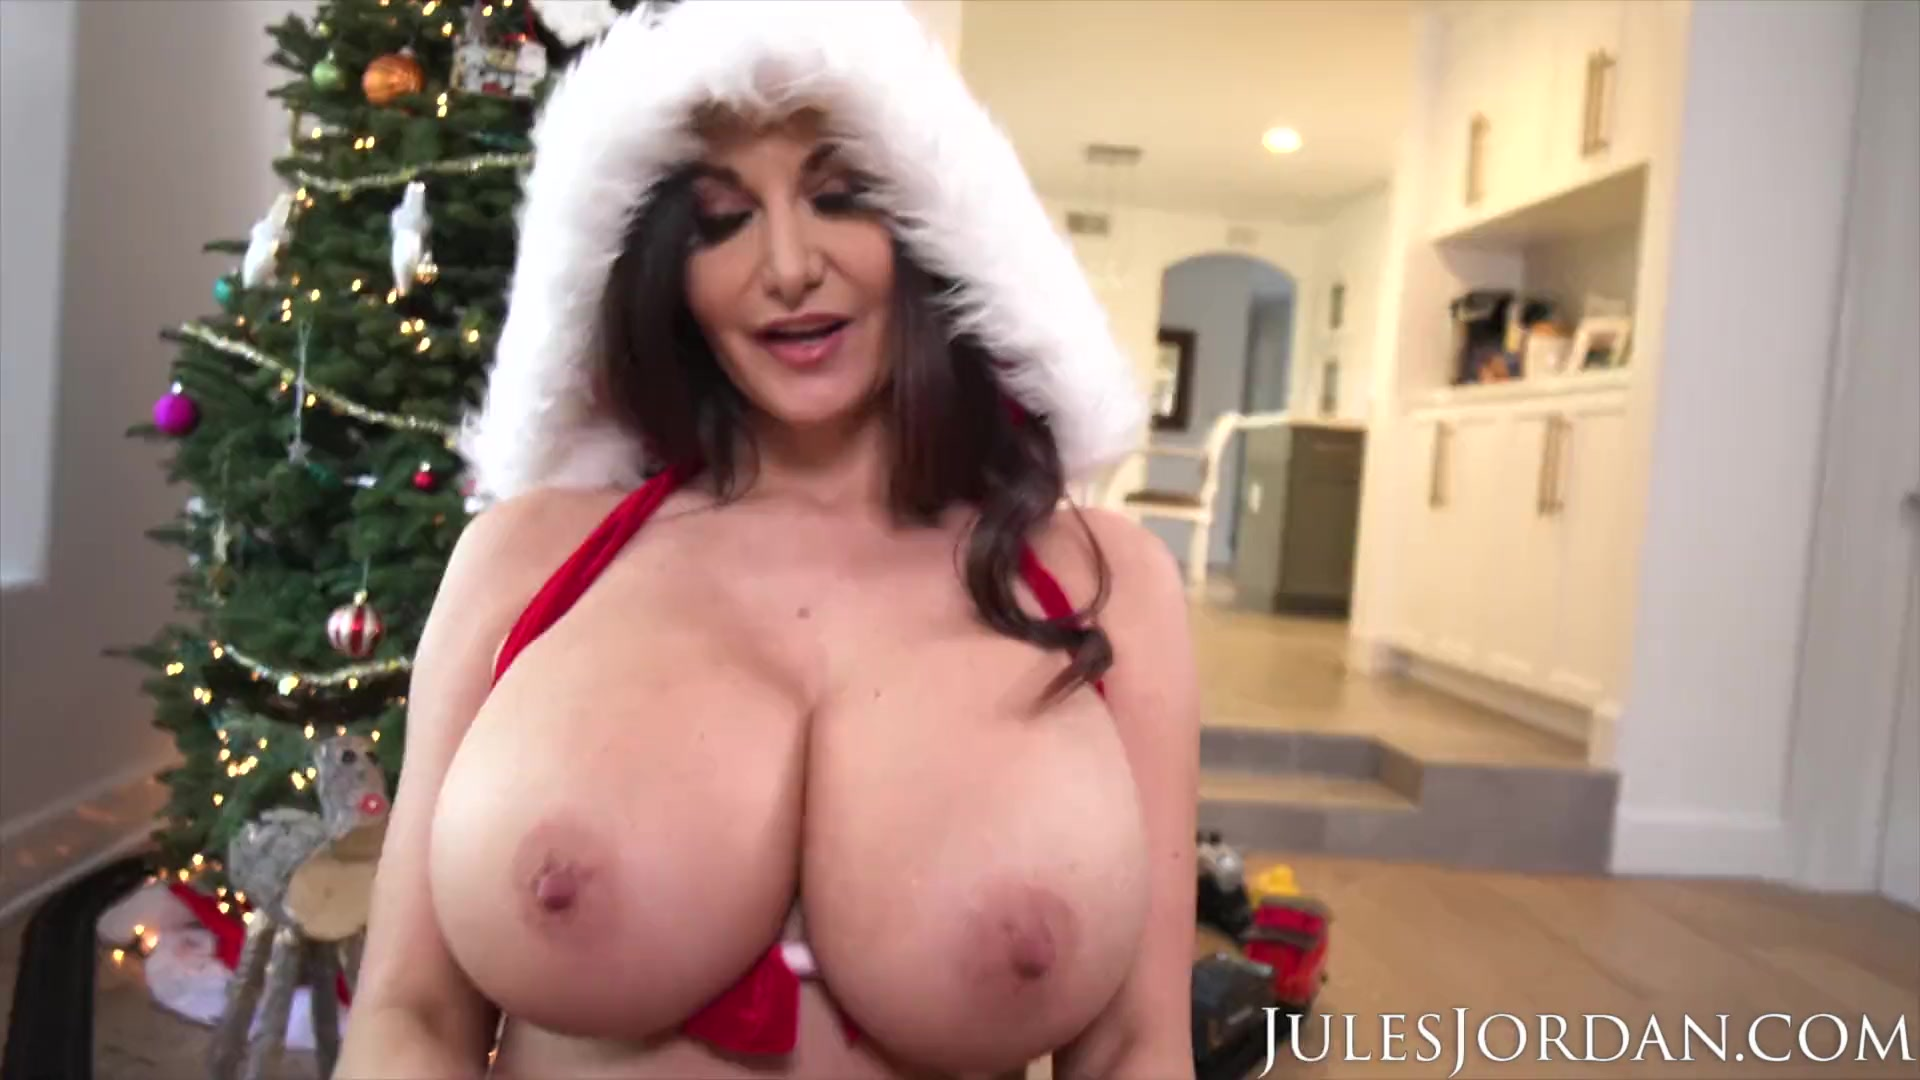 Ava addams jules jordan photo 2